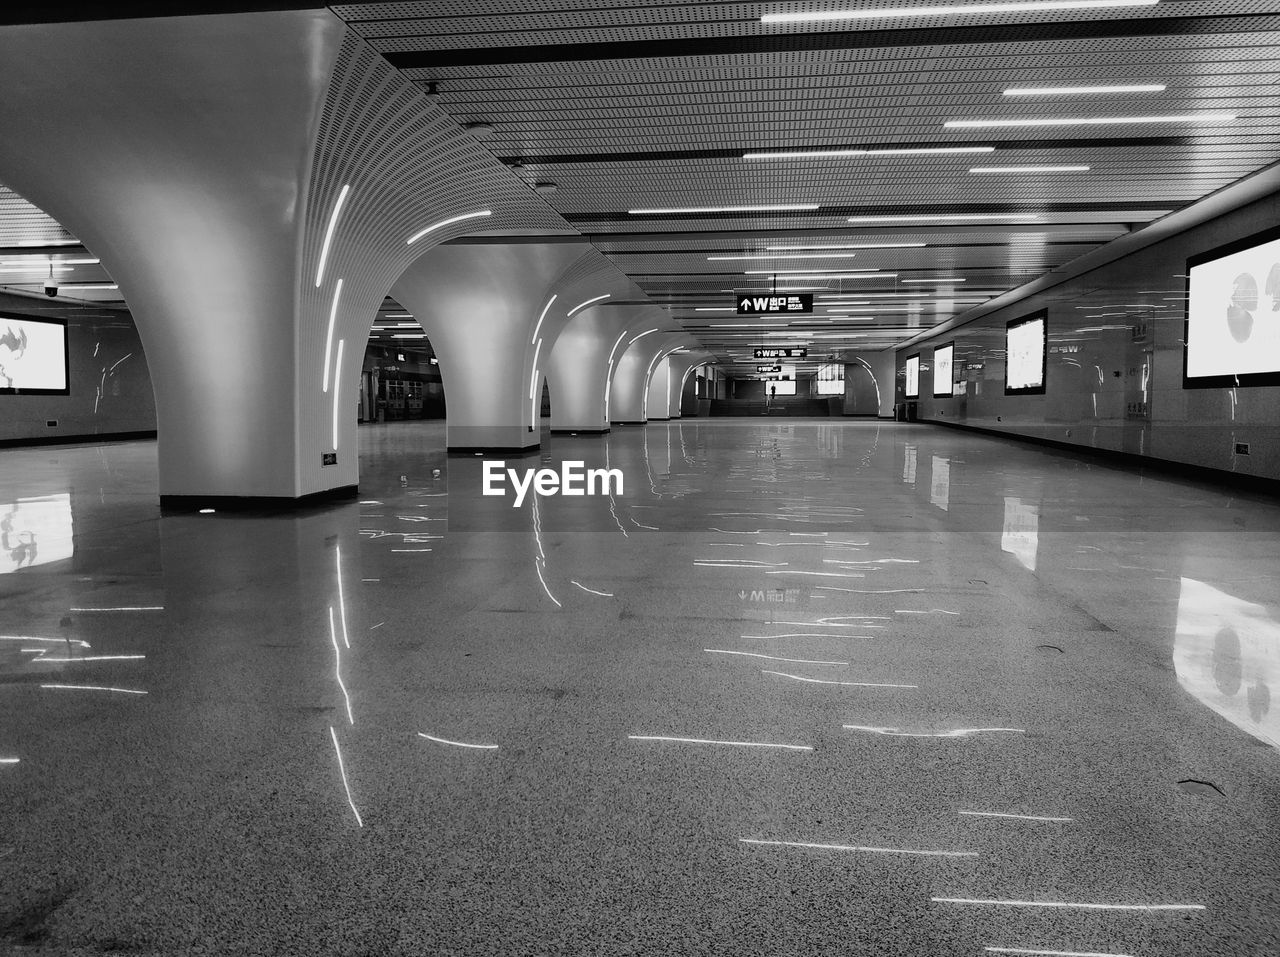 illuminated, architecture, indoors, transportation, built structure, empty, ceiling, flooring, direction, the way forward, architectural column, sign, no people, public transportation, reflection, lighting equipment, building, subway, symbol, absence, diminishing perspective, modern, parking garage, surface level, tiled floor, long